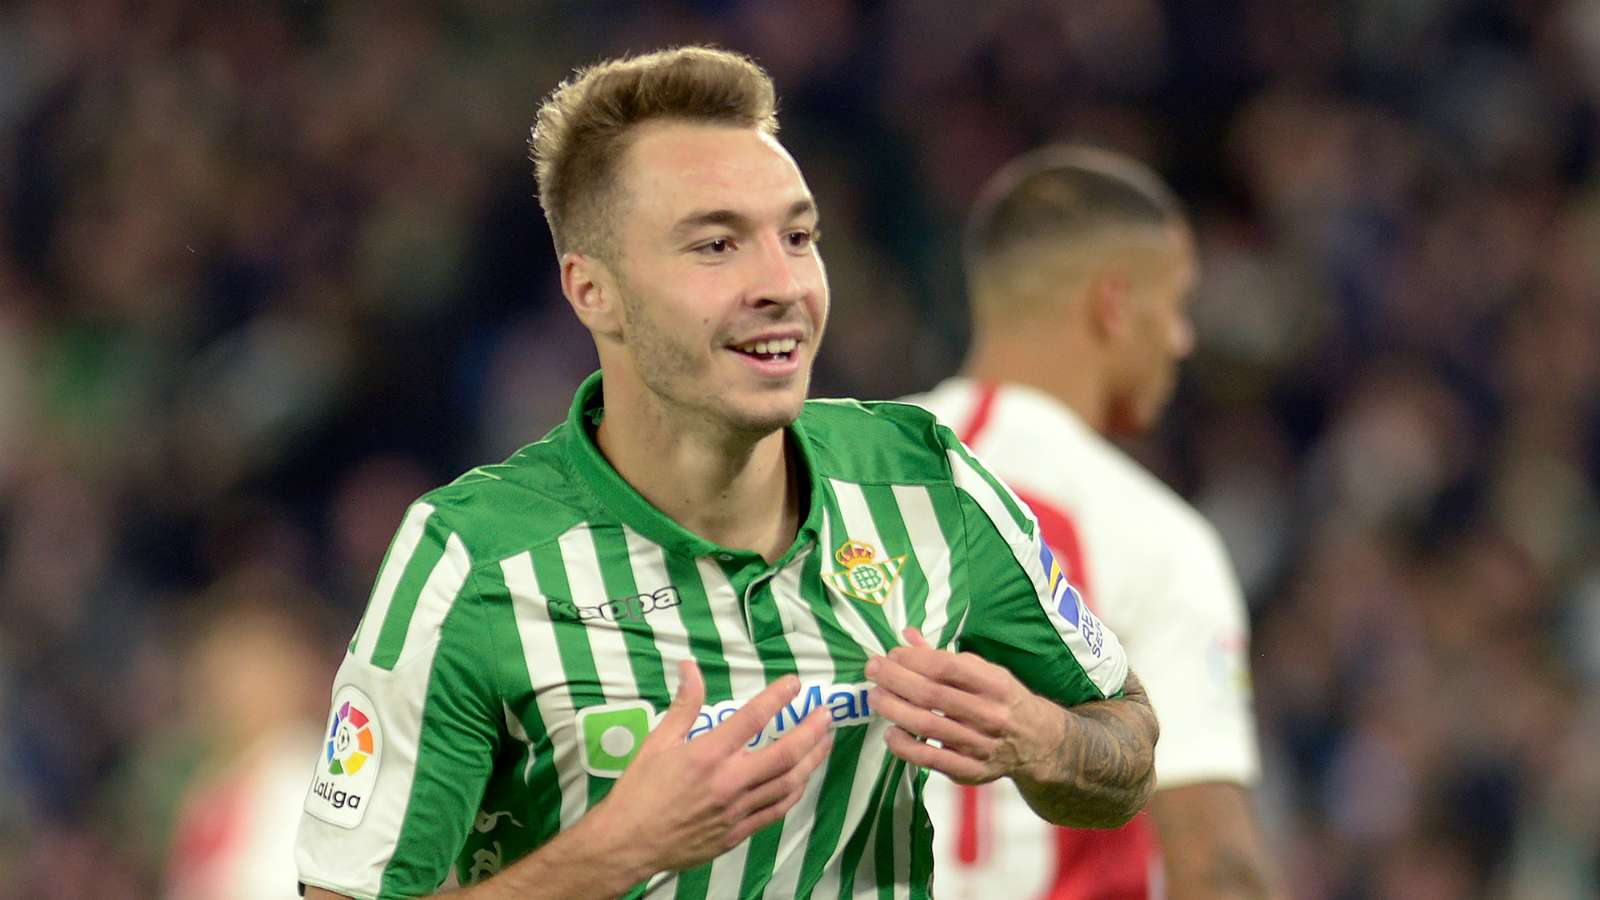 Barcelona have asked about Loren but he's not leaving, say Betis - Bóng Đá